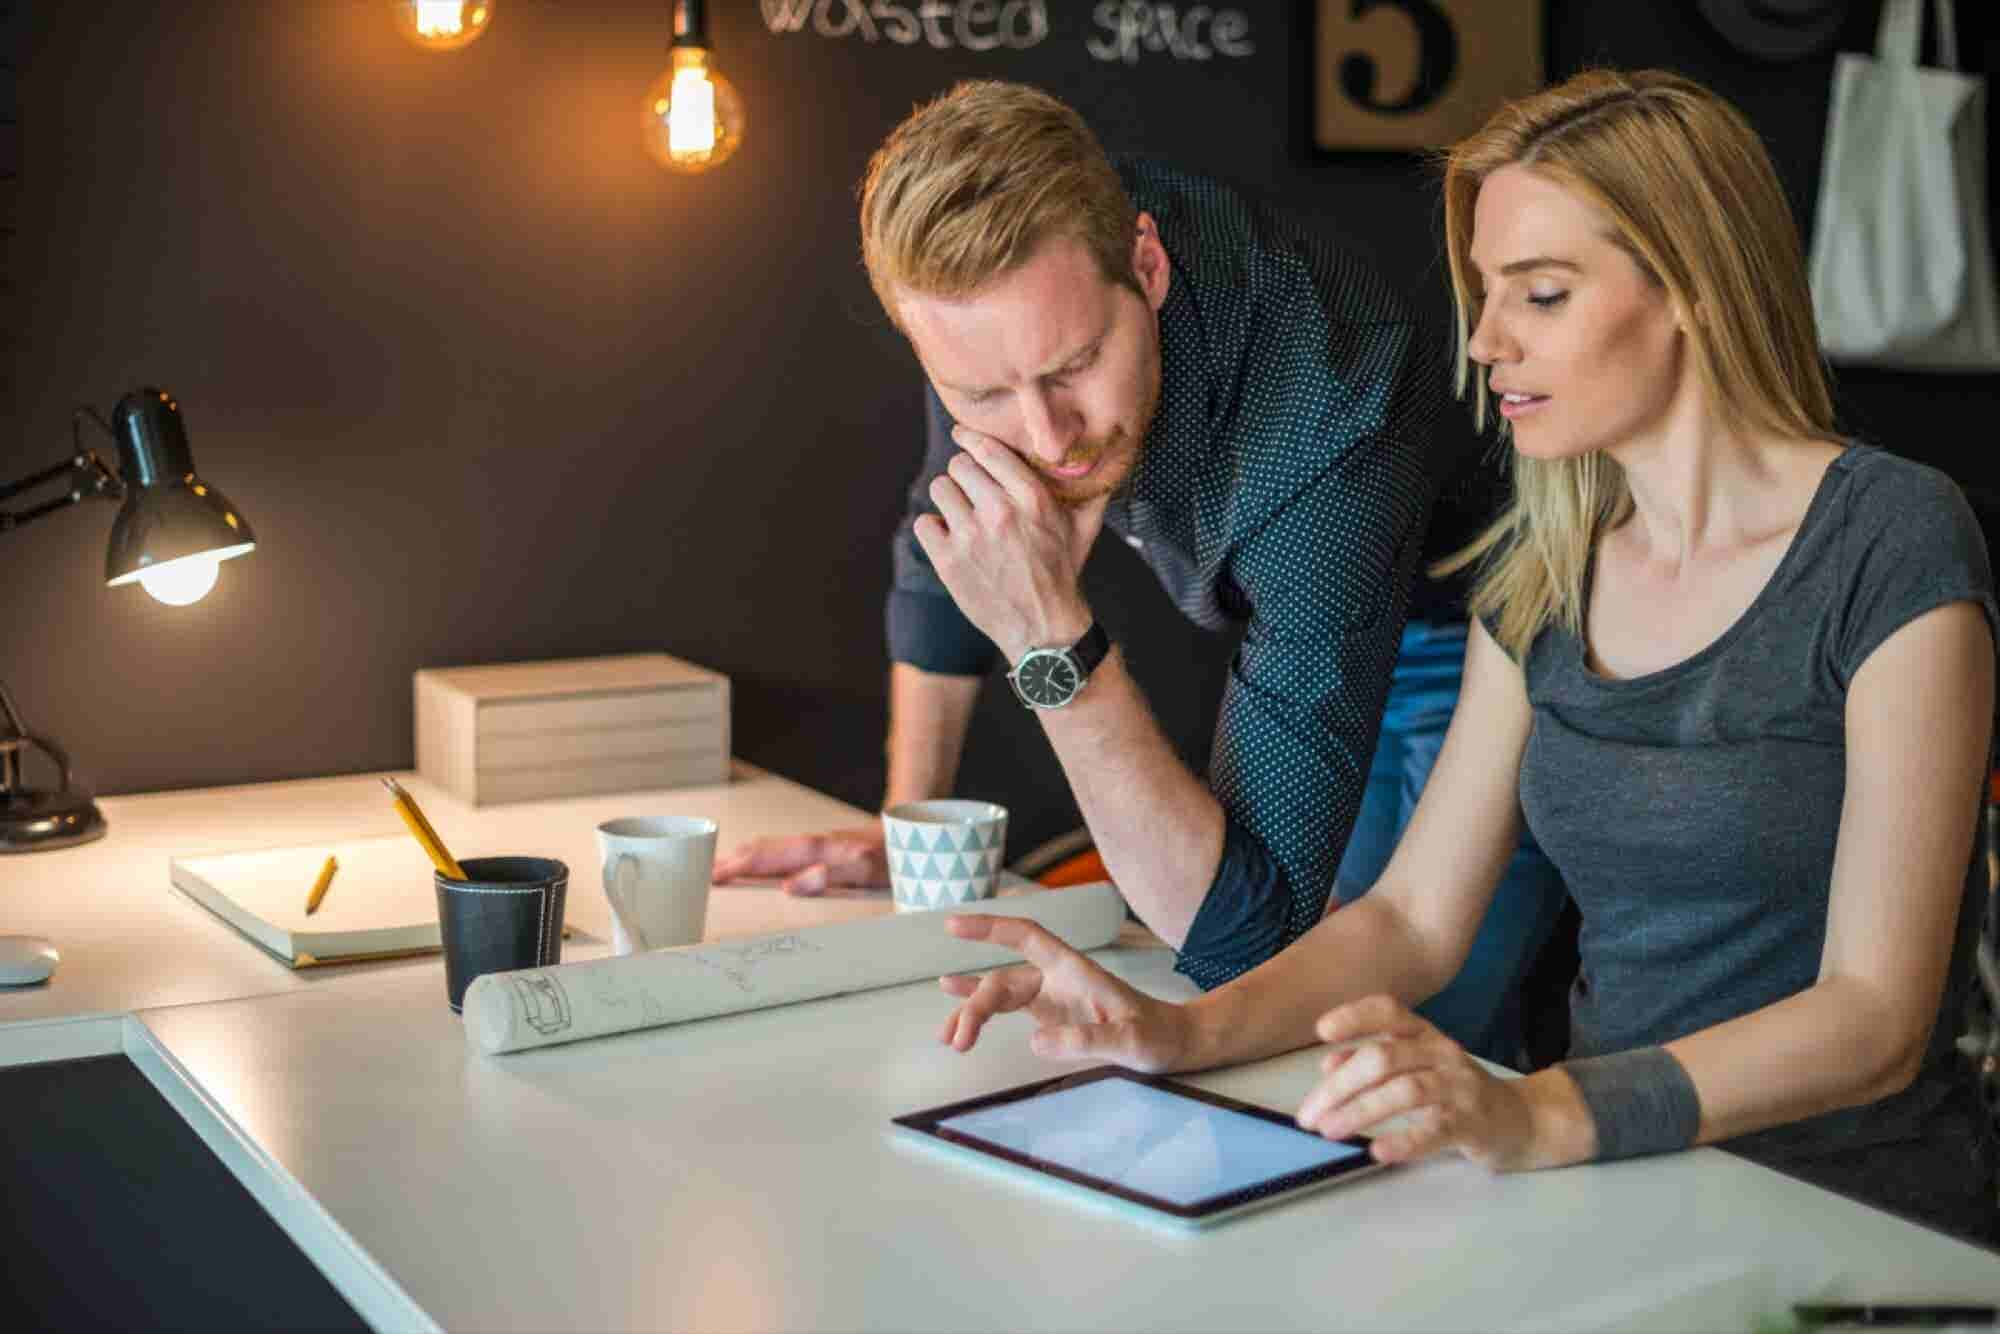 Has Your Business Stopped Growing? Here's How to Turn Things Around.